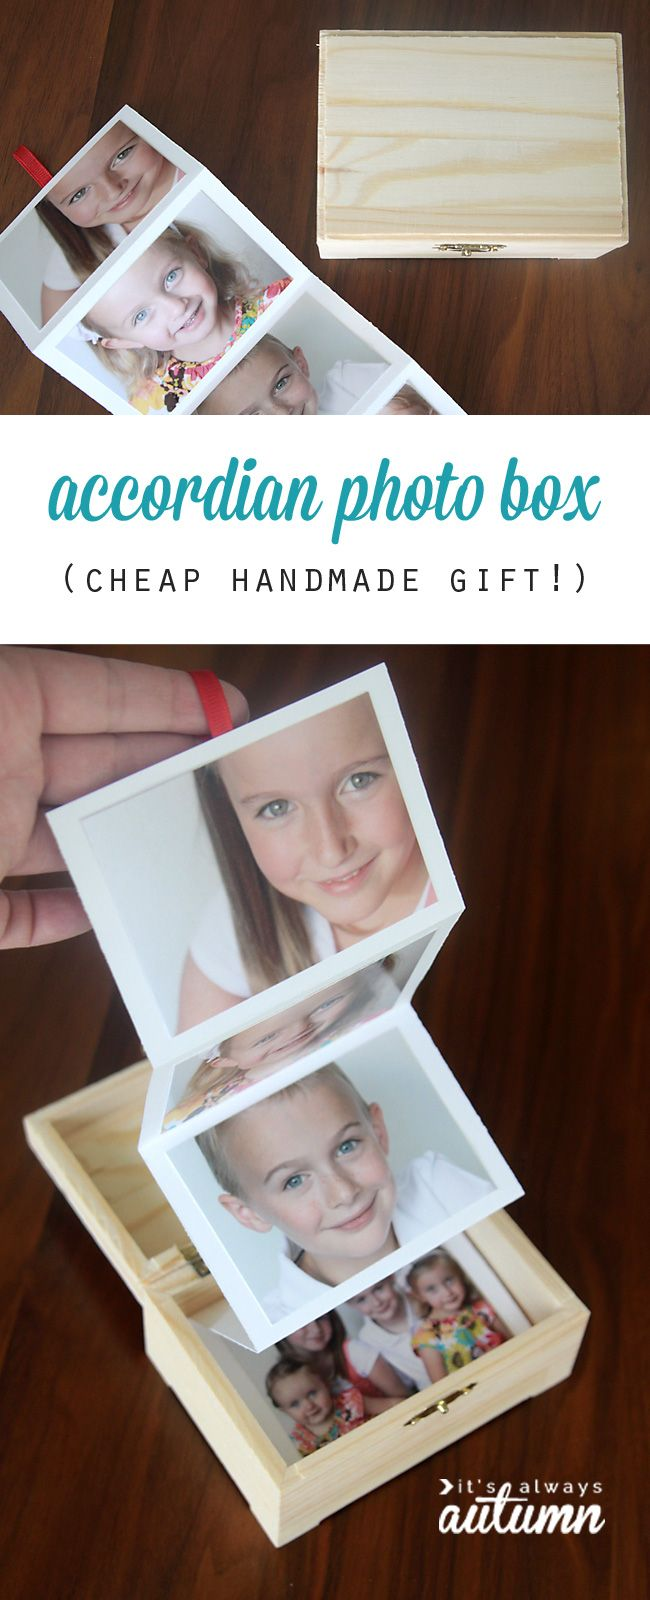 What a great gift idea! DIY photo box - easy & cheap, and perfect Christmas gift idea for mom, dad, grandparents, spouses, and more.